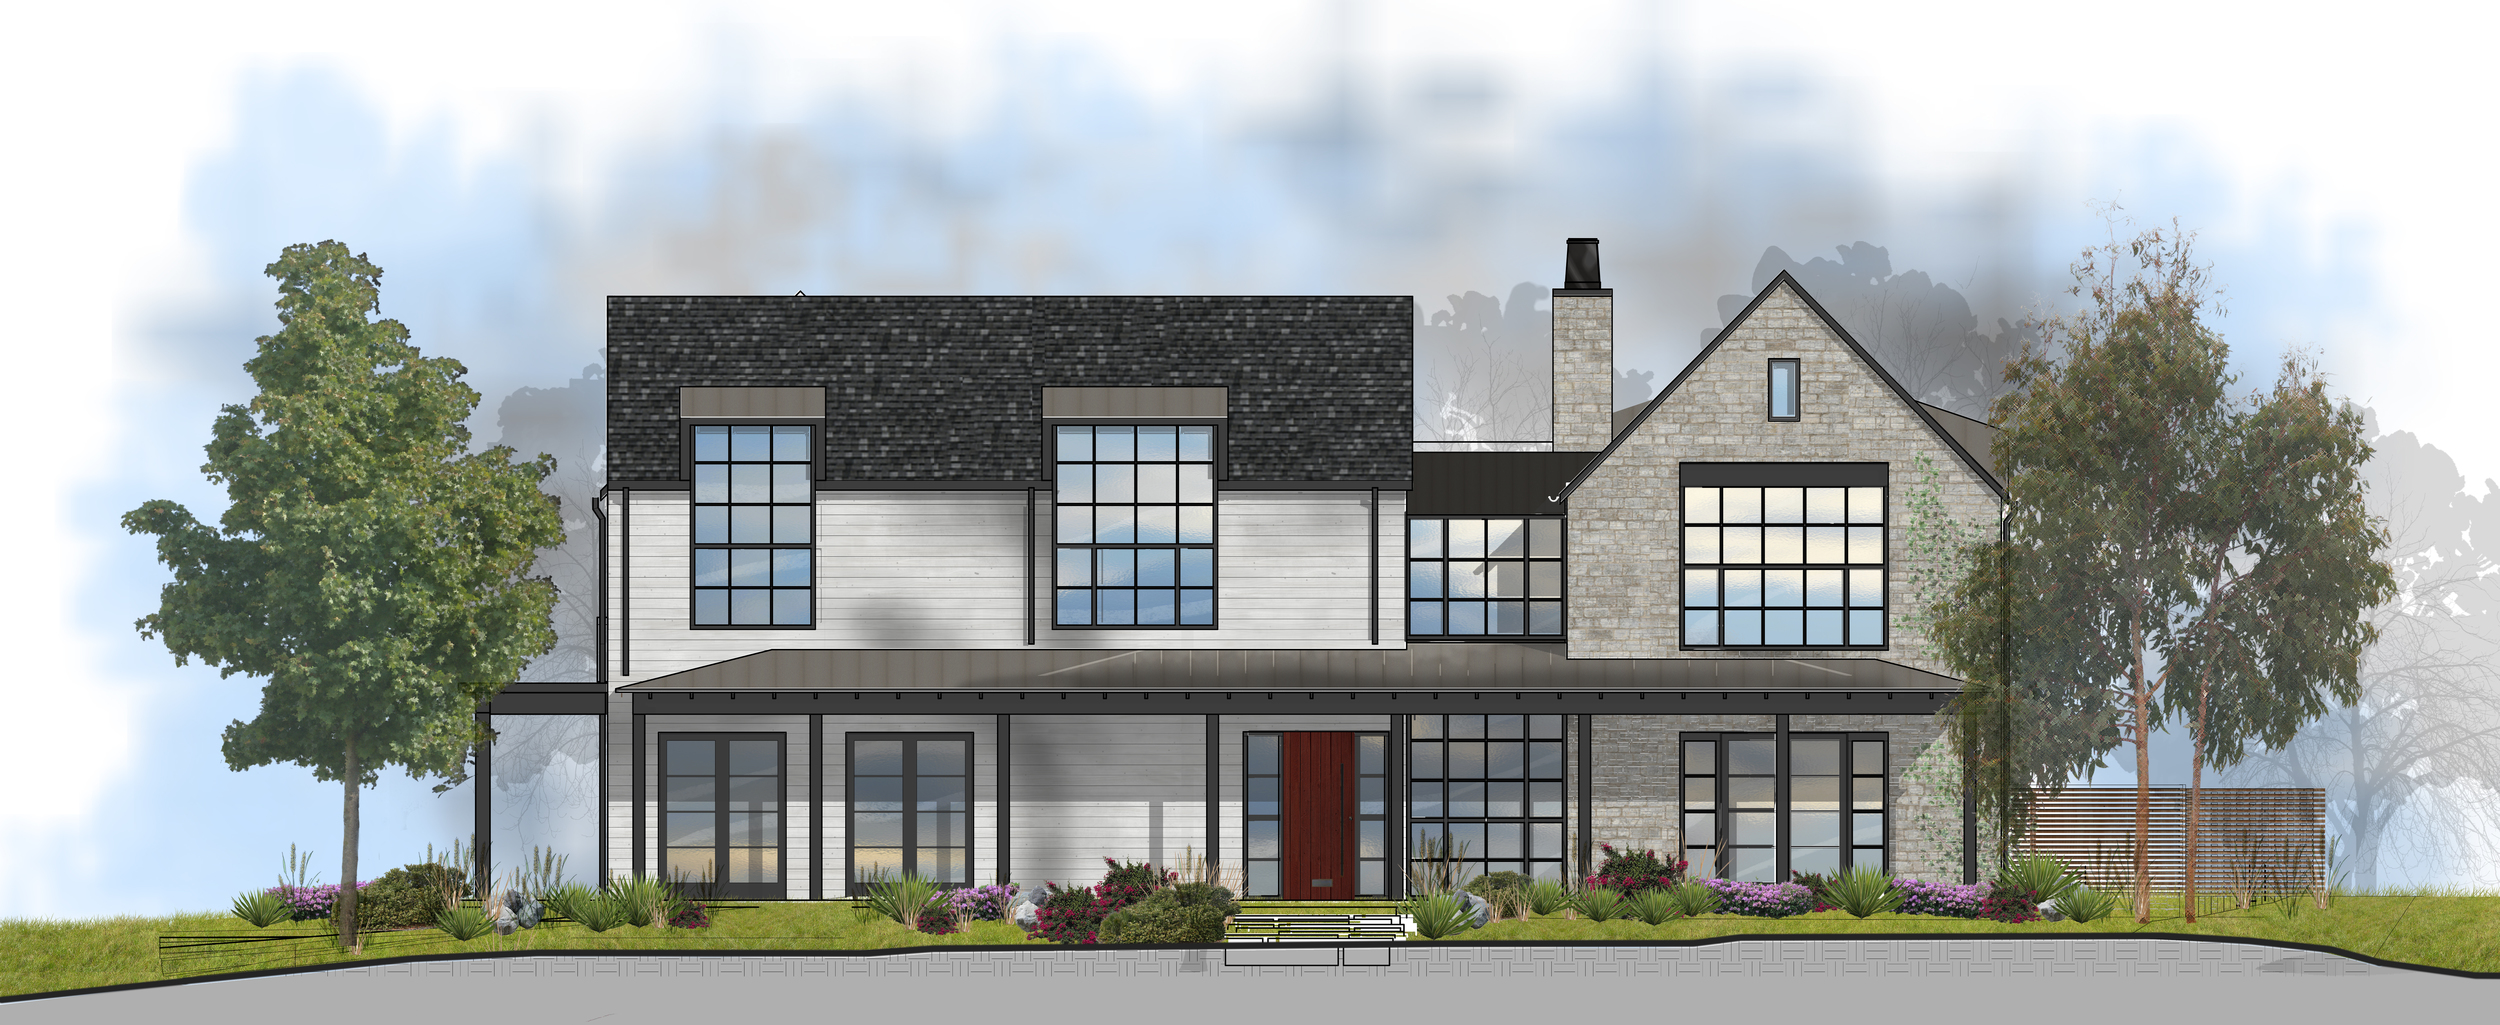 Rendering - East Elevation